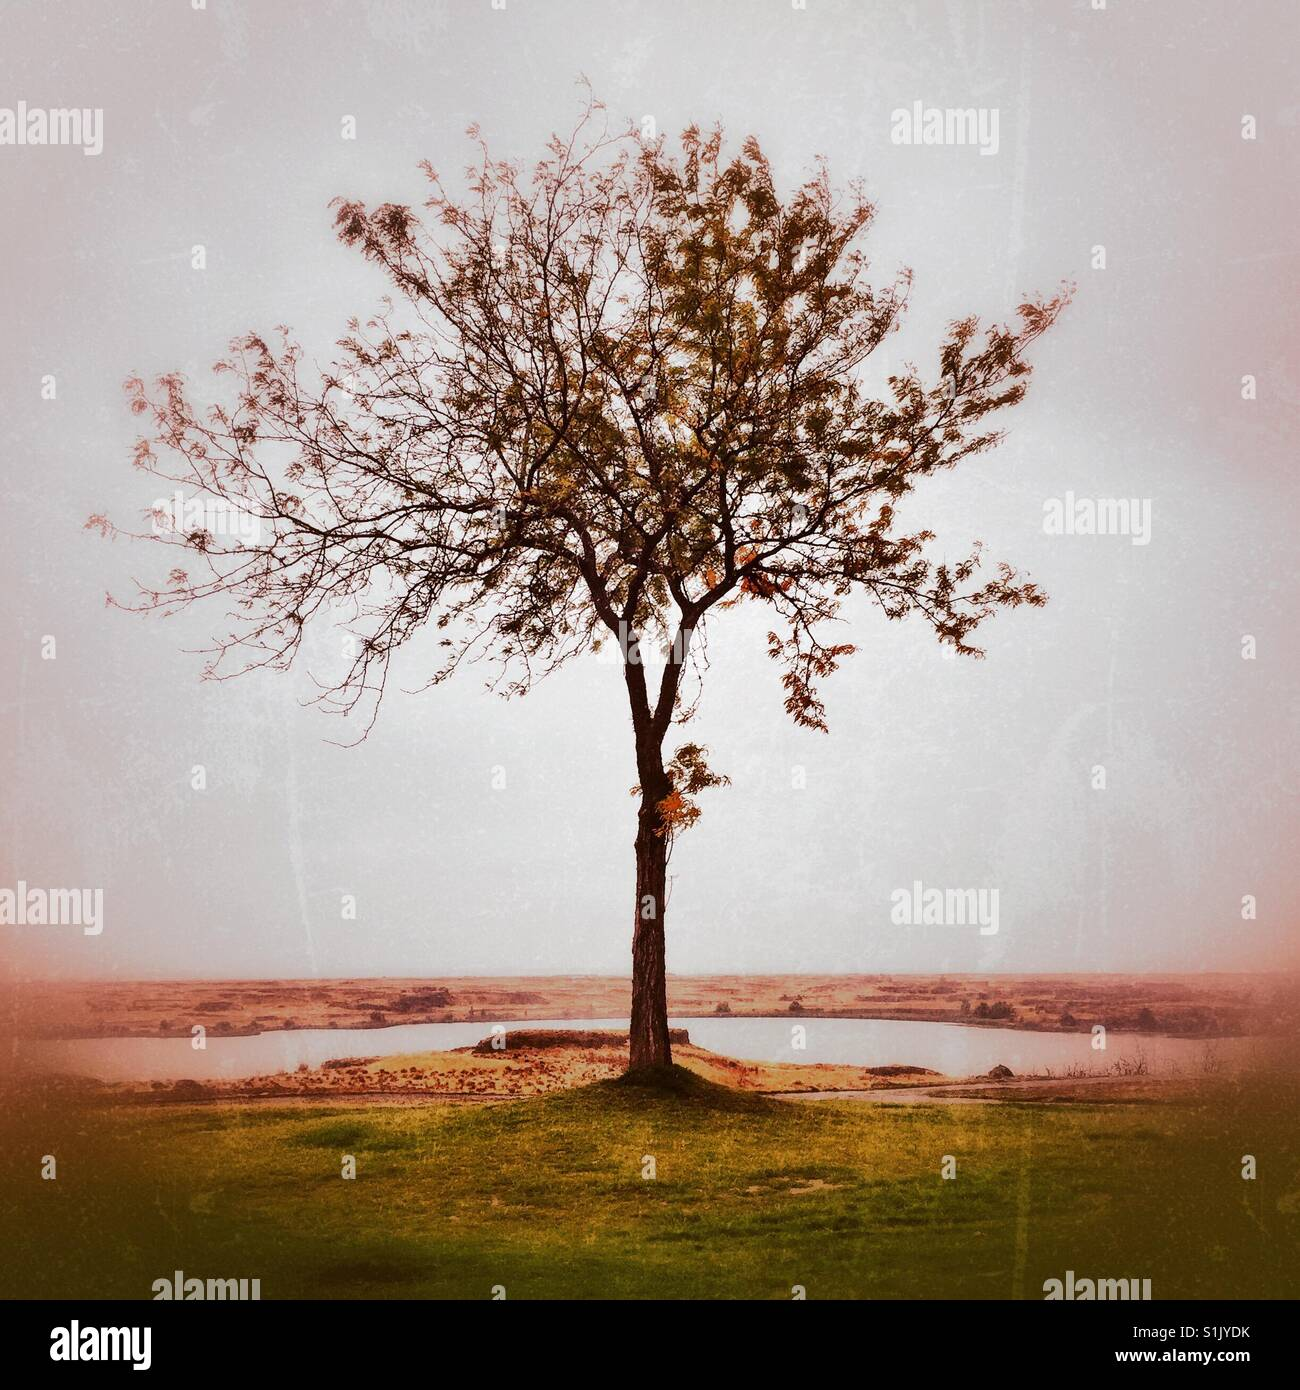 A lonely tree in the fall - Stock Image